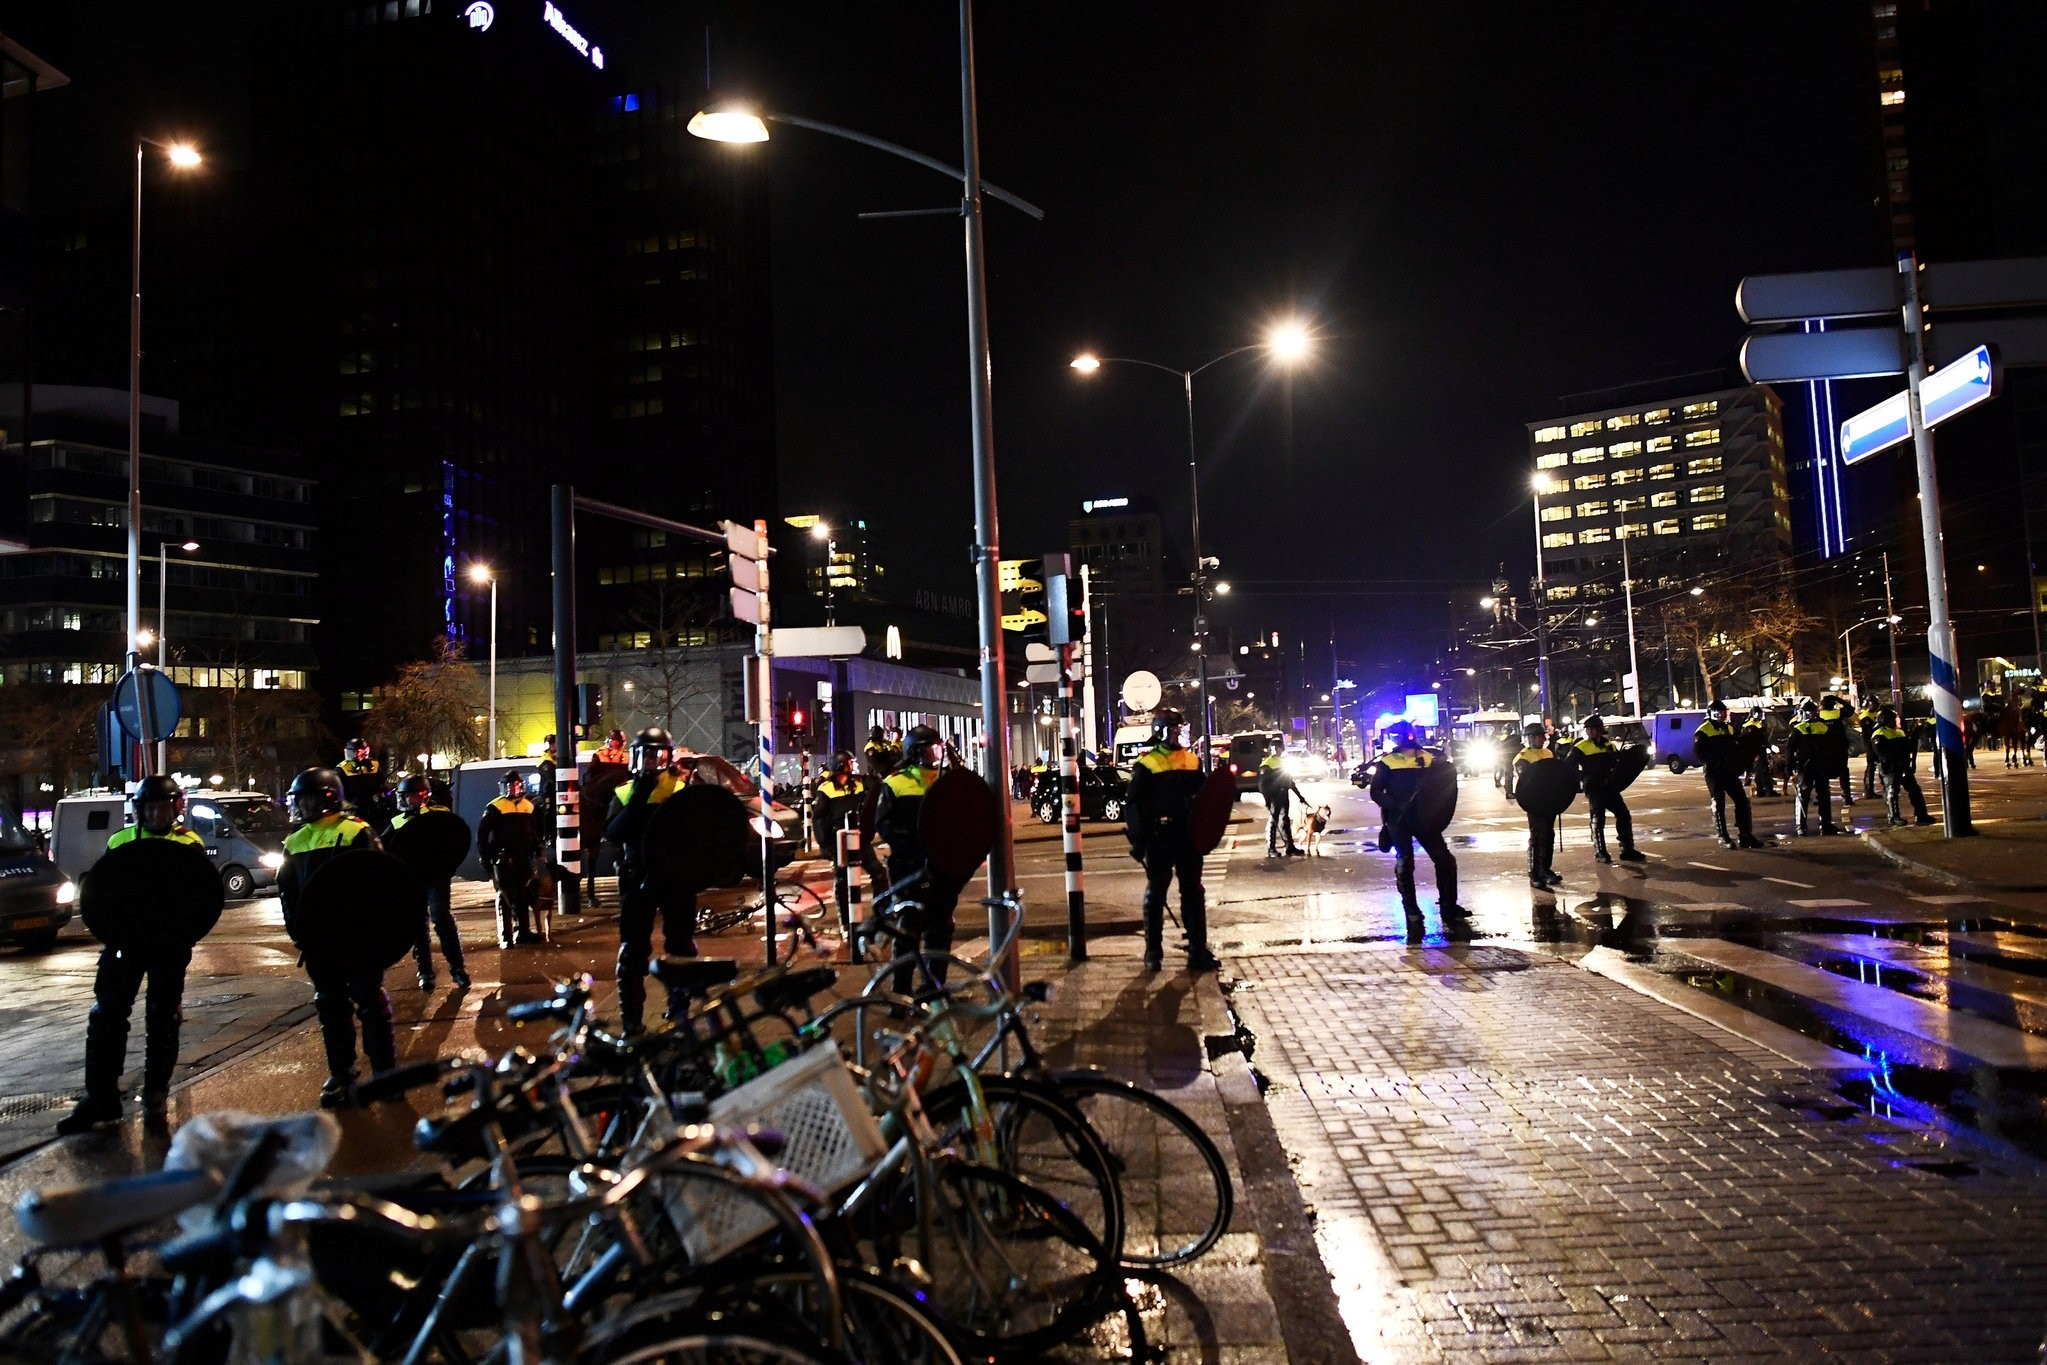 Dutch police standing on streets during clashes with demonstrators, who protested Dutch gov'tu2019s undemocratic decision to block Turkeyu2019s Minister of Family and Social Affairs, Fatma Betu00fcl Sayan Kaya to enter Turkish consulate in Rotterdam, March 11.